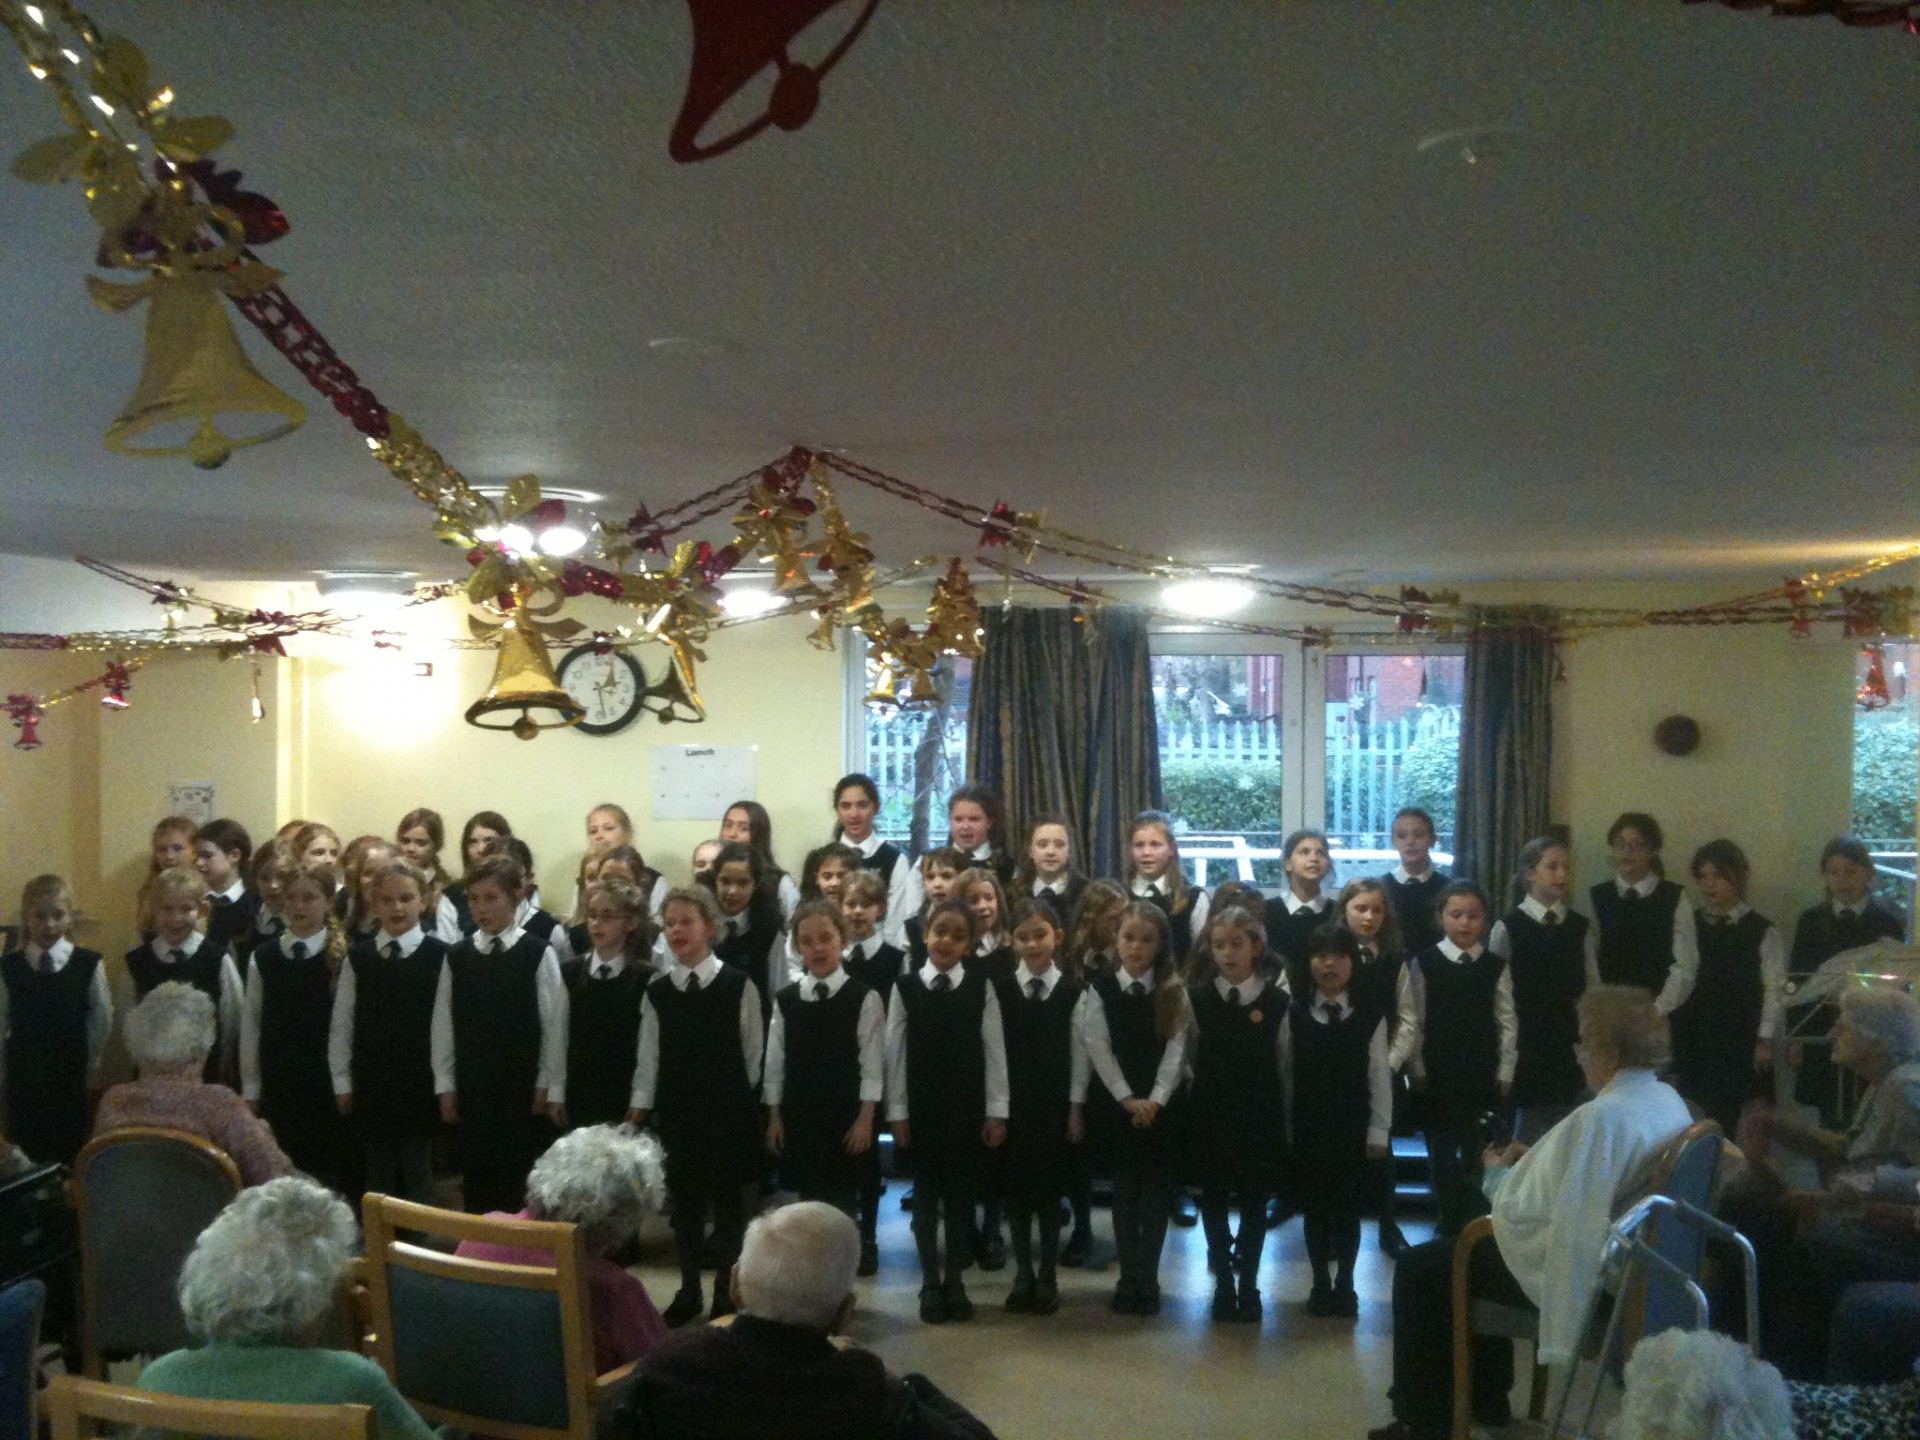 The Choir Delighted The Residents At Clifton Garden Care Home With  Christmas Songs And Music; Everyone Clearly Enjoyed Seeing And Hearing Our  Children ...